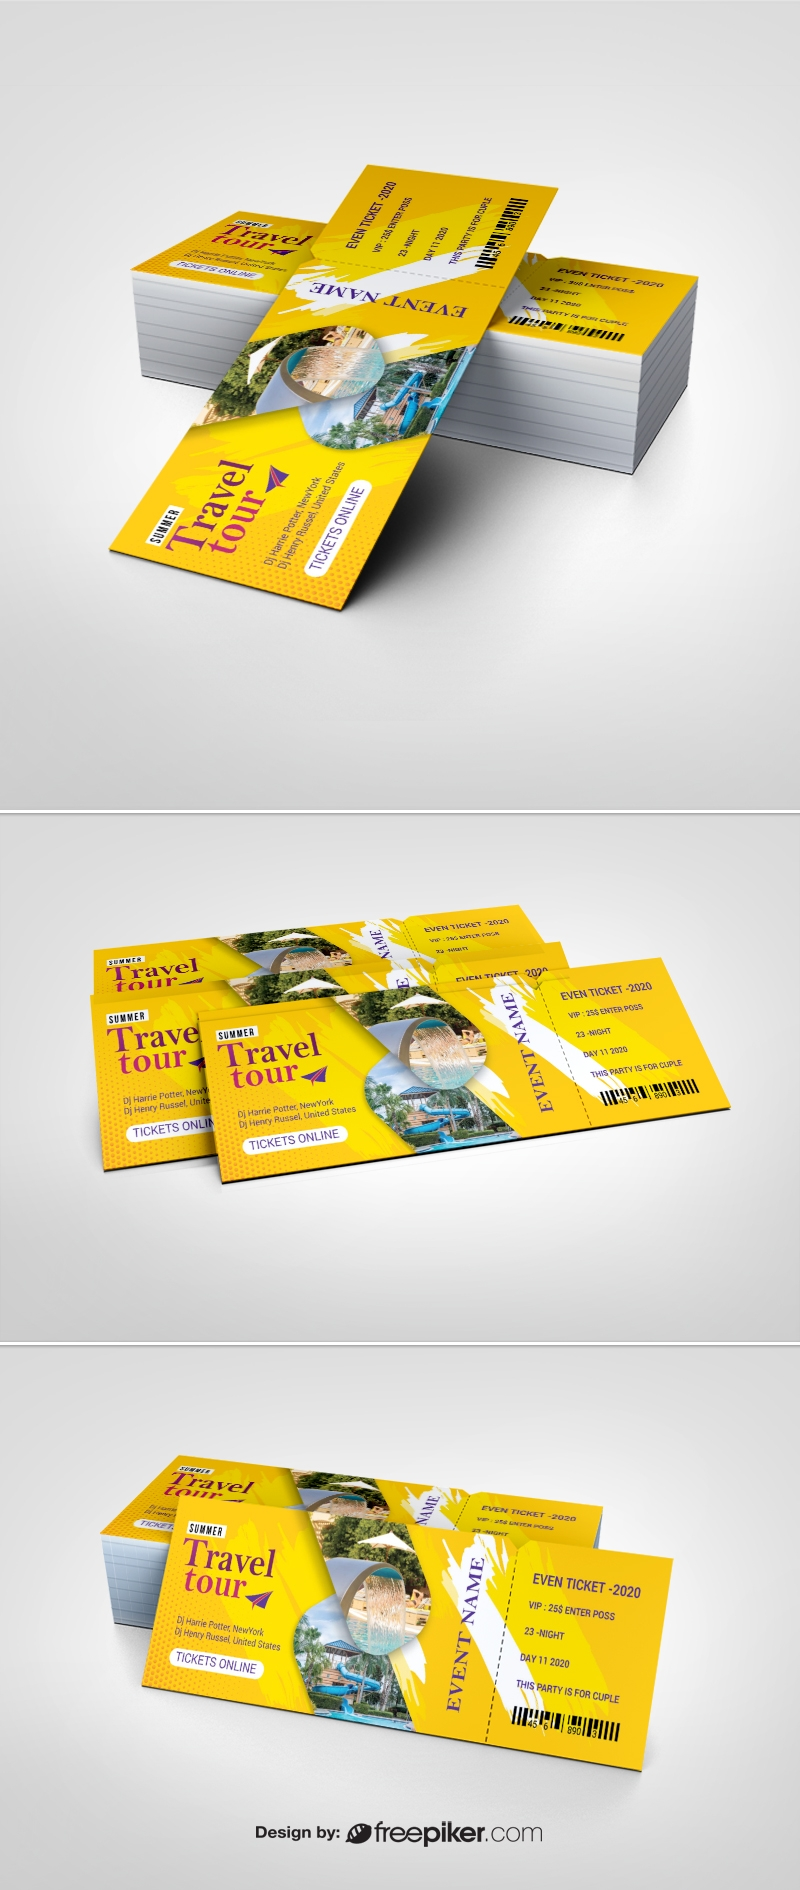 Travel Tours Event Ticket With Yellow Accent